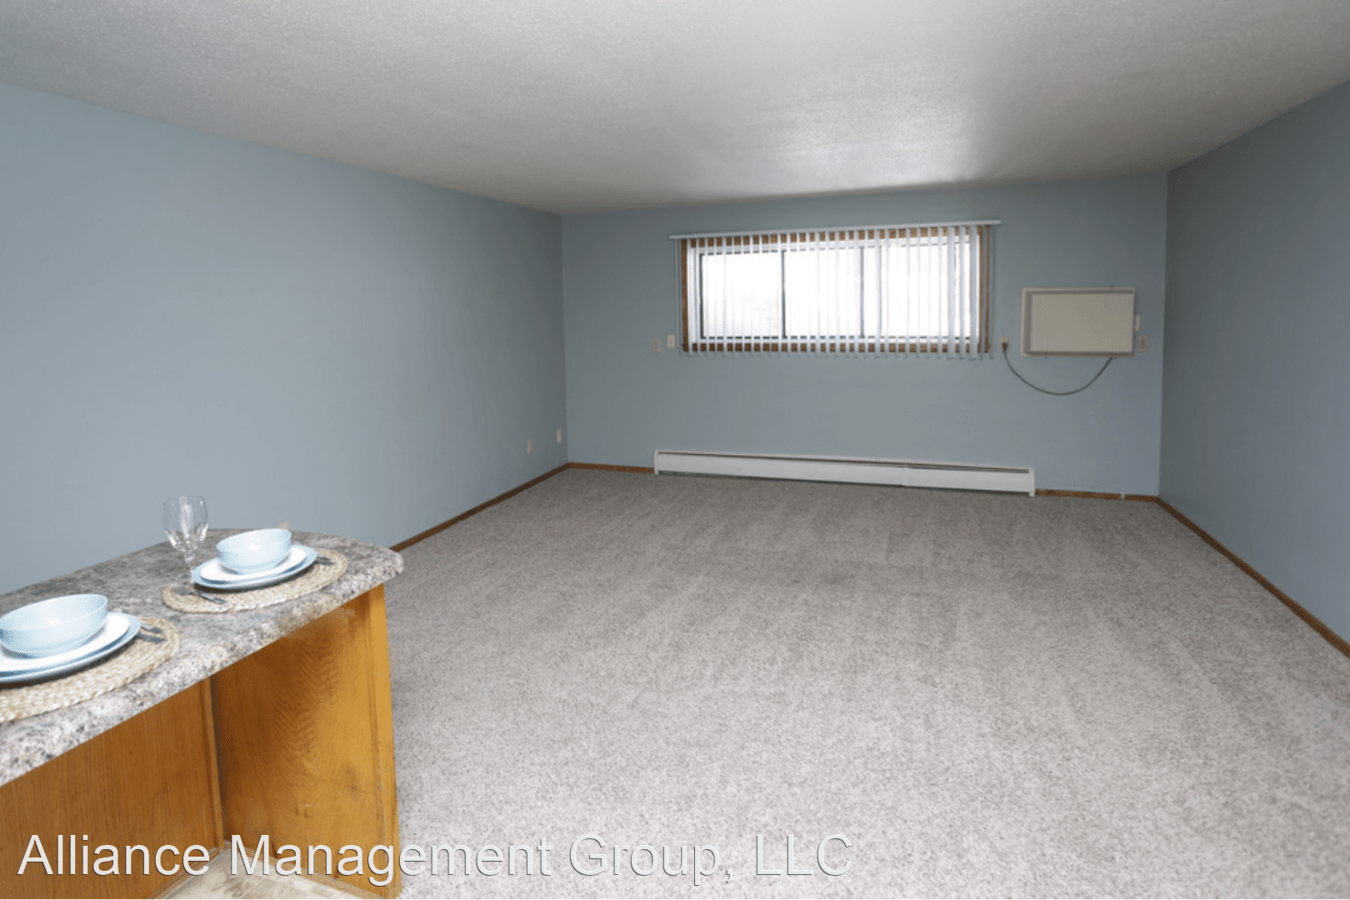 2 Bedrooms 1 Bathroom Apartment for rent at 502-504 30Th Ave in Fargo, ND